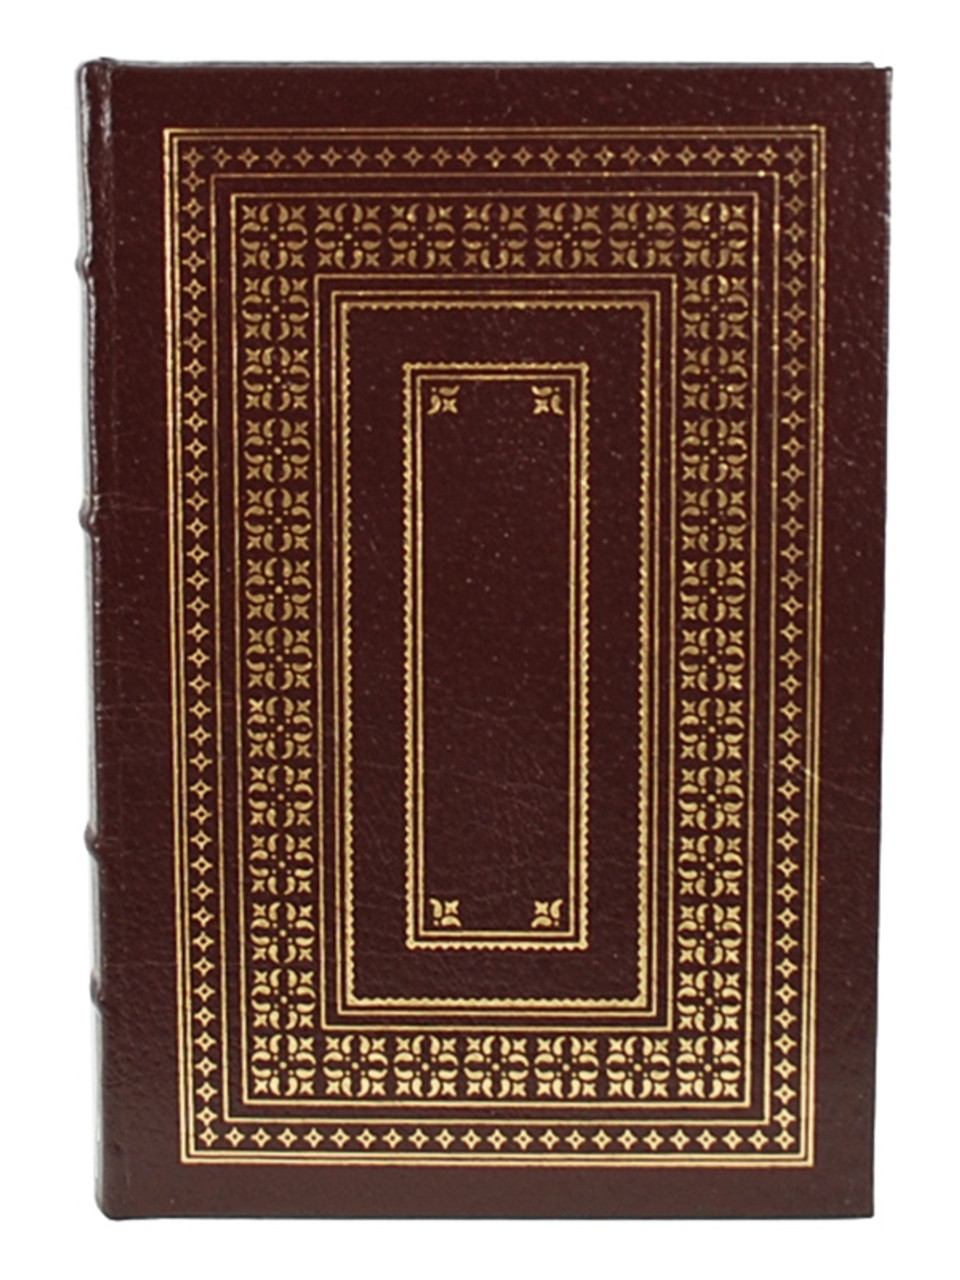 """Easton Press, Stephen Hawking """"A Brief History of Time"""" Leather Bound Collector's Edition"""